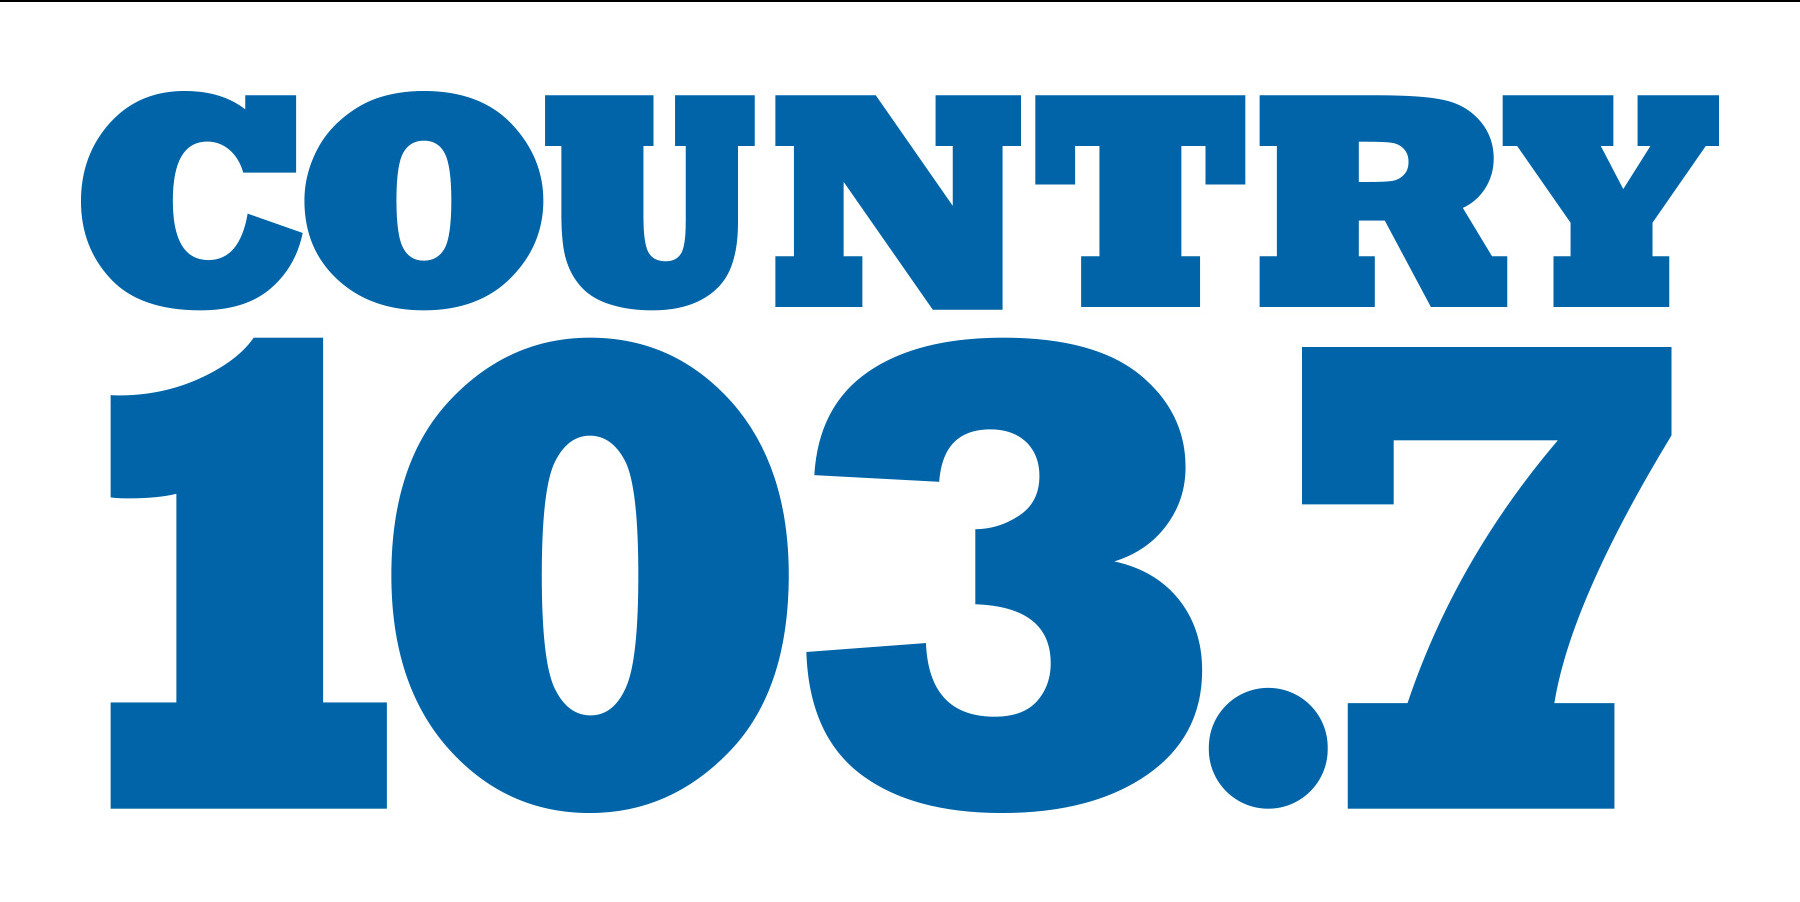 Charlotte's Country 103.7